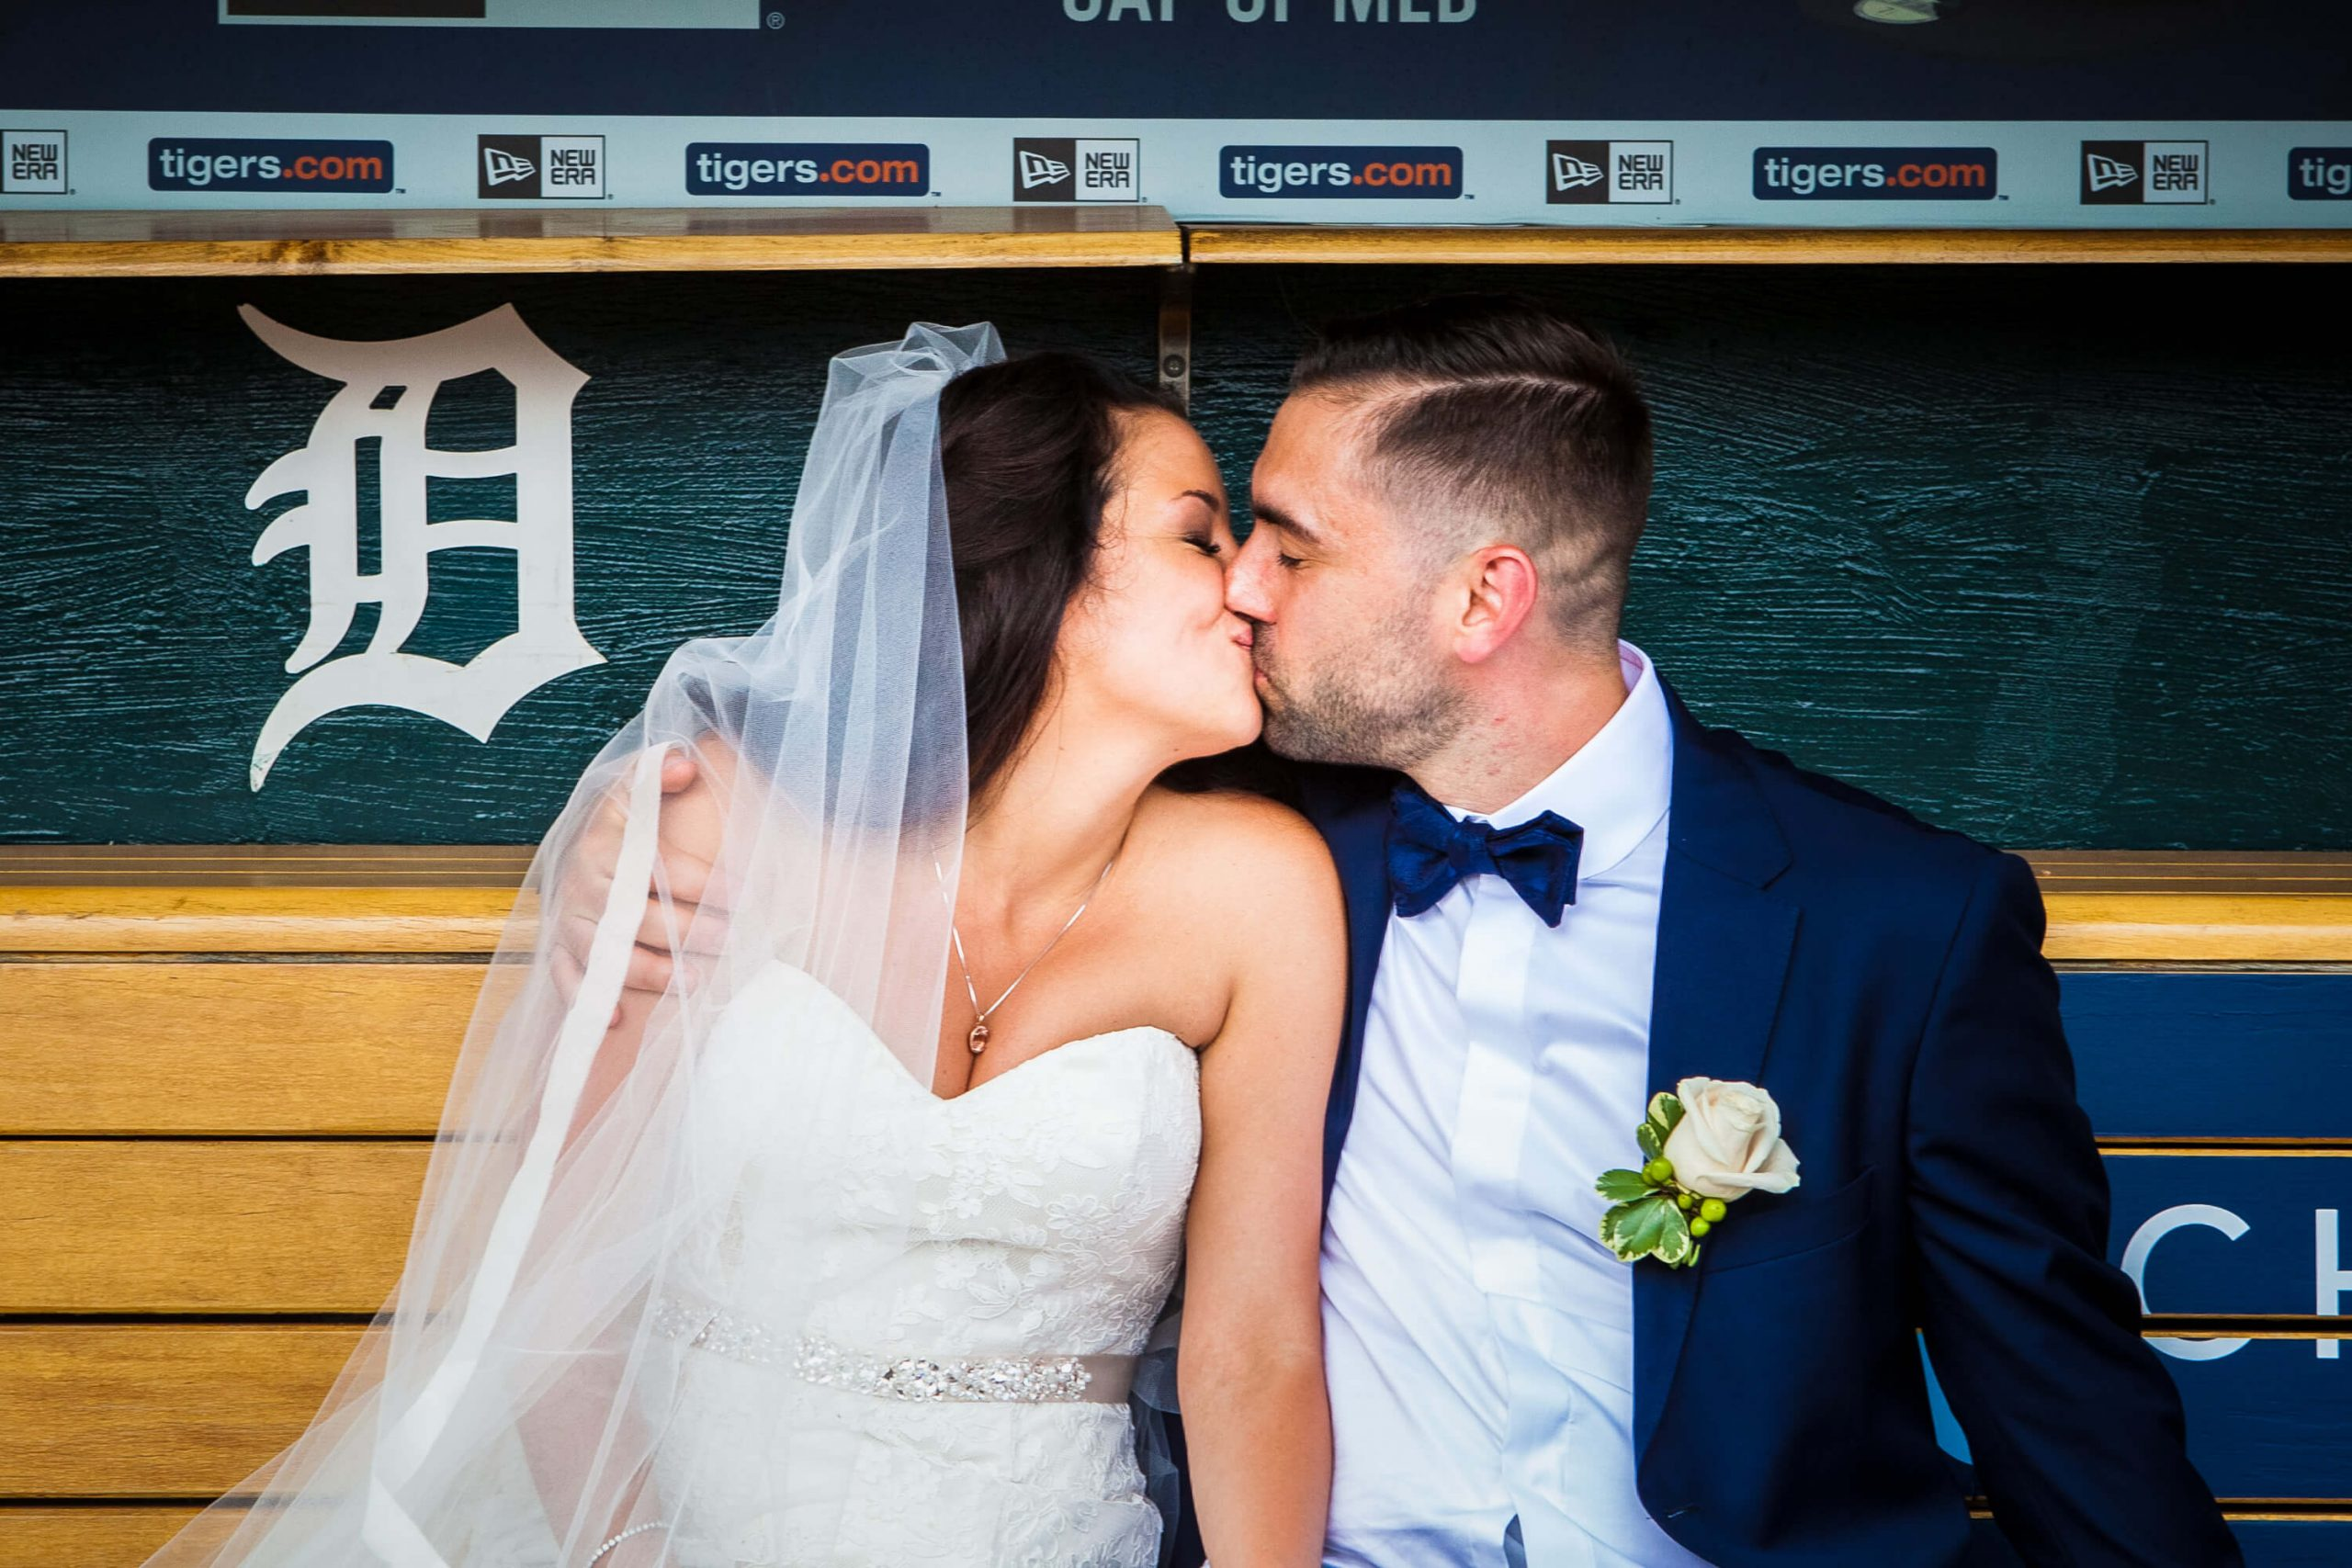 bride and groom kissing detroit tigers dugout